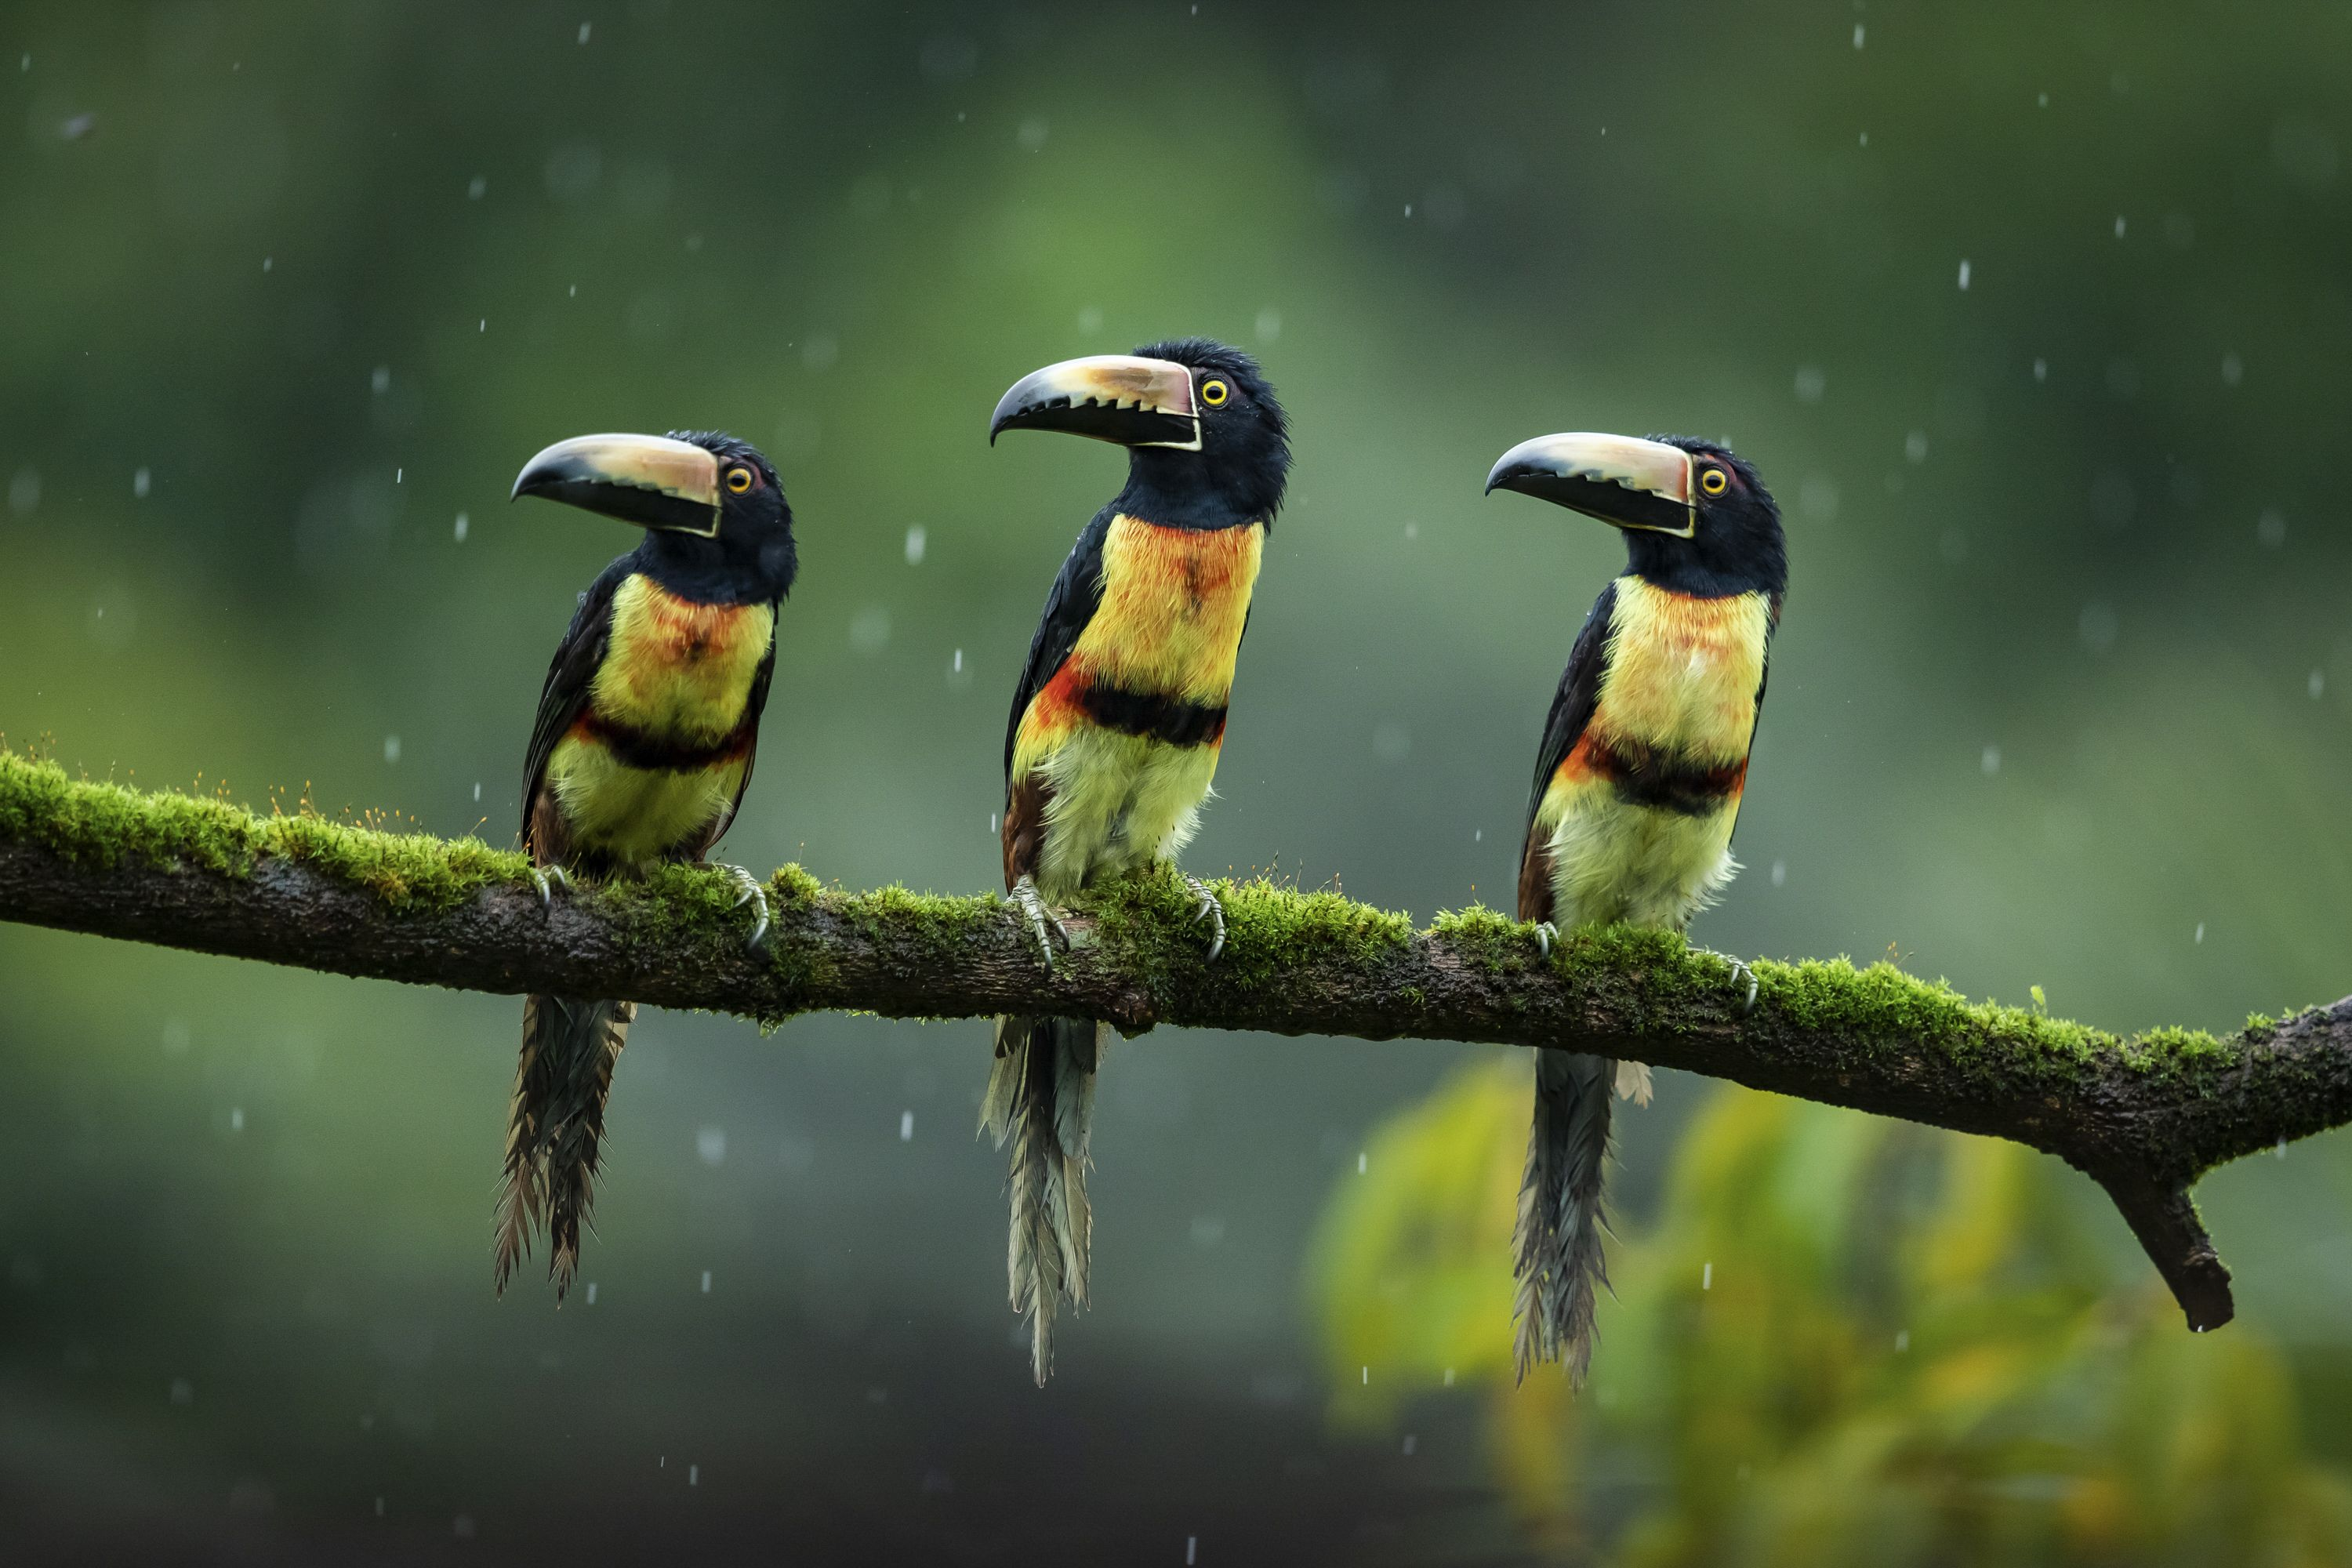 three colorful parrot-like birds sit on a branch in a forest in the rain